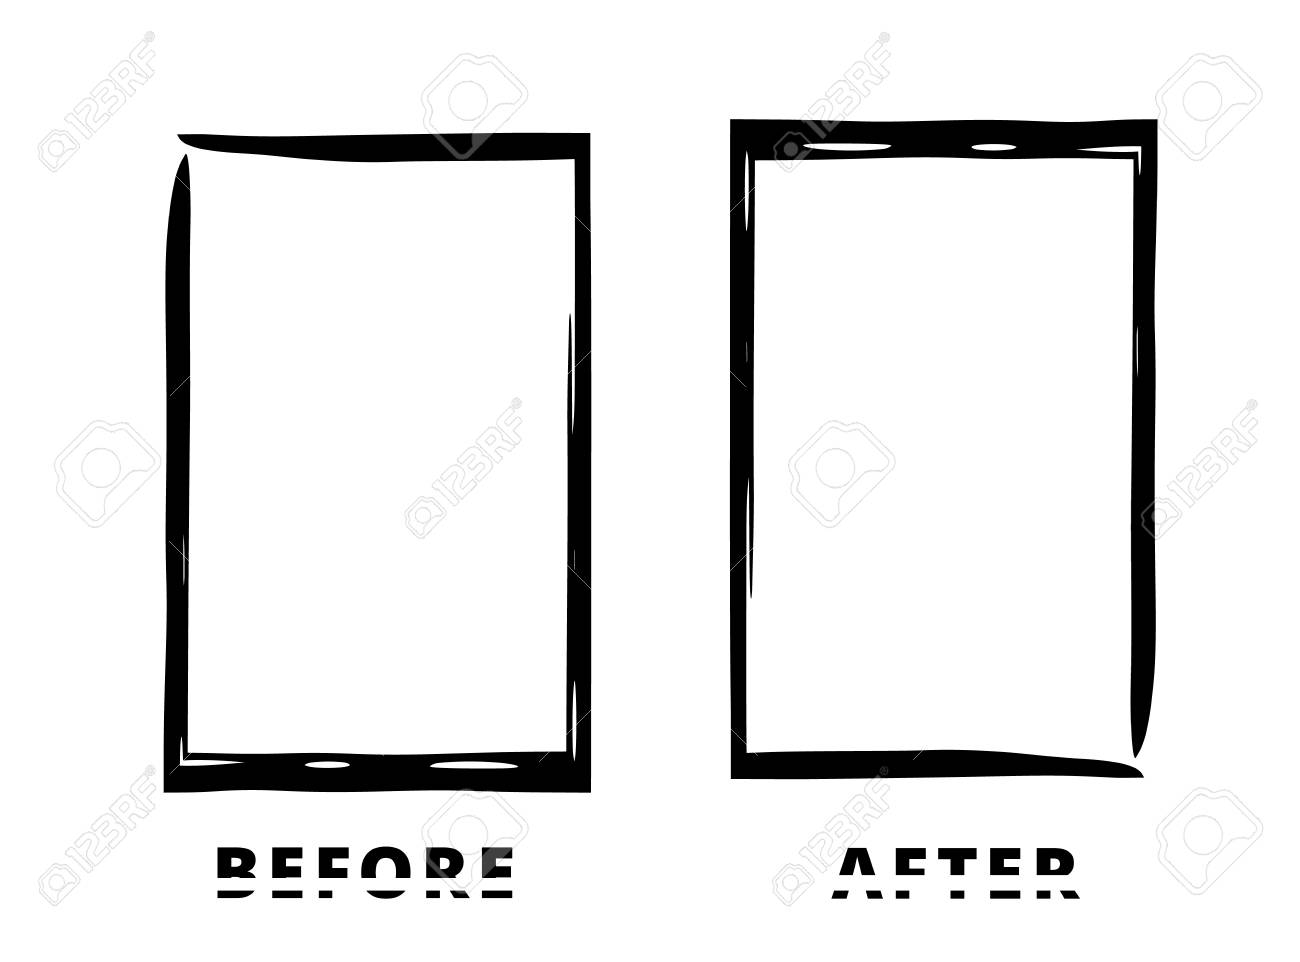 Before And After Sliced Text With Black Frames Isolated On White